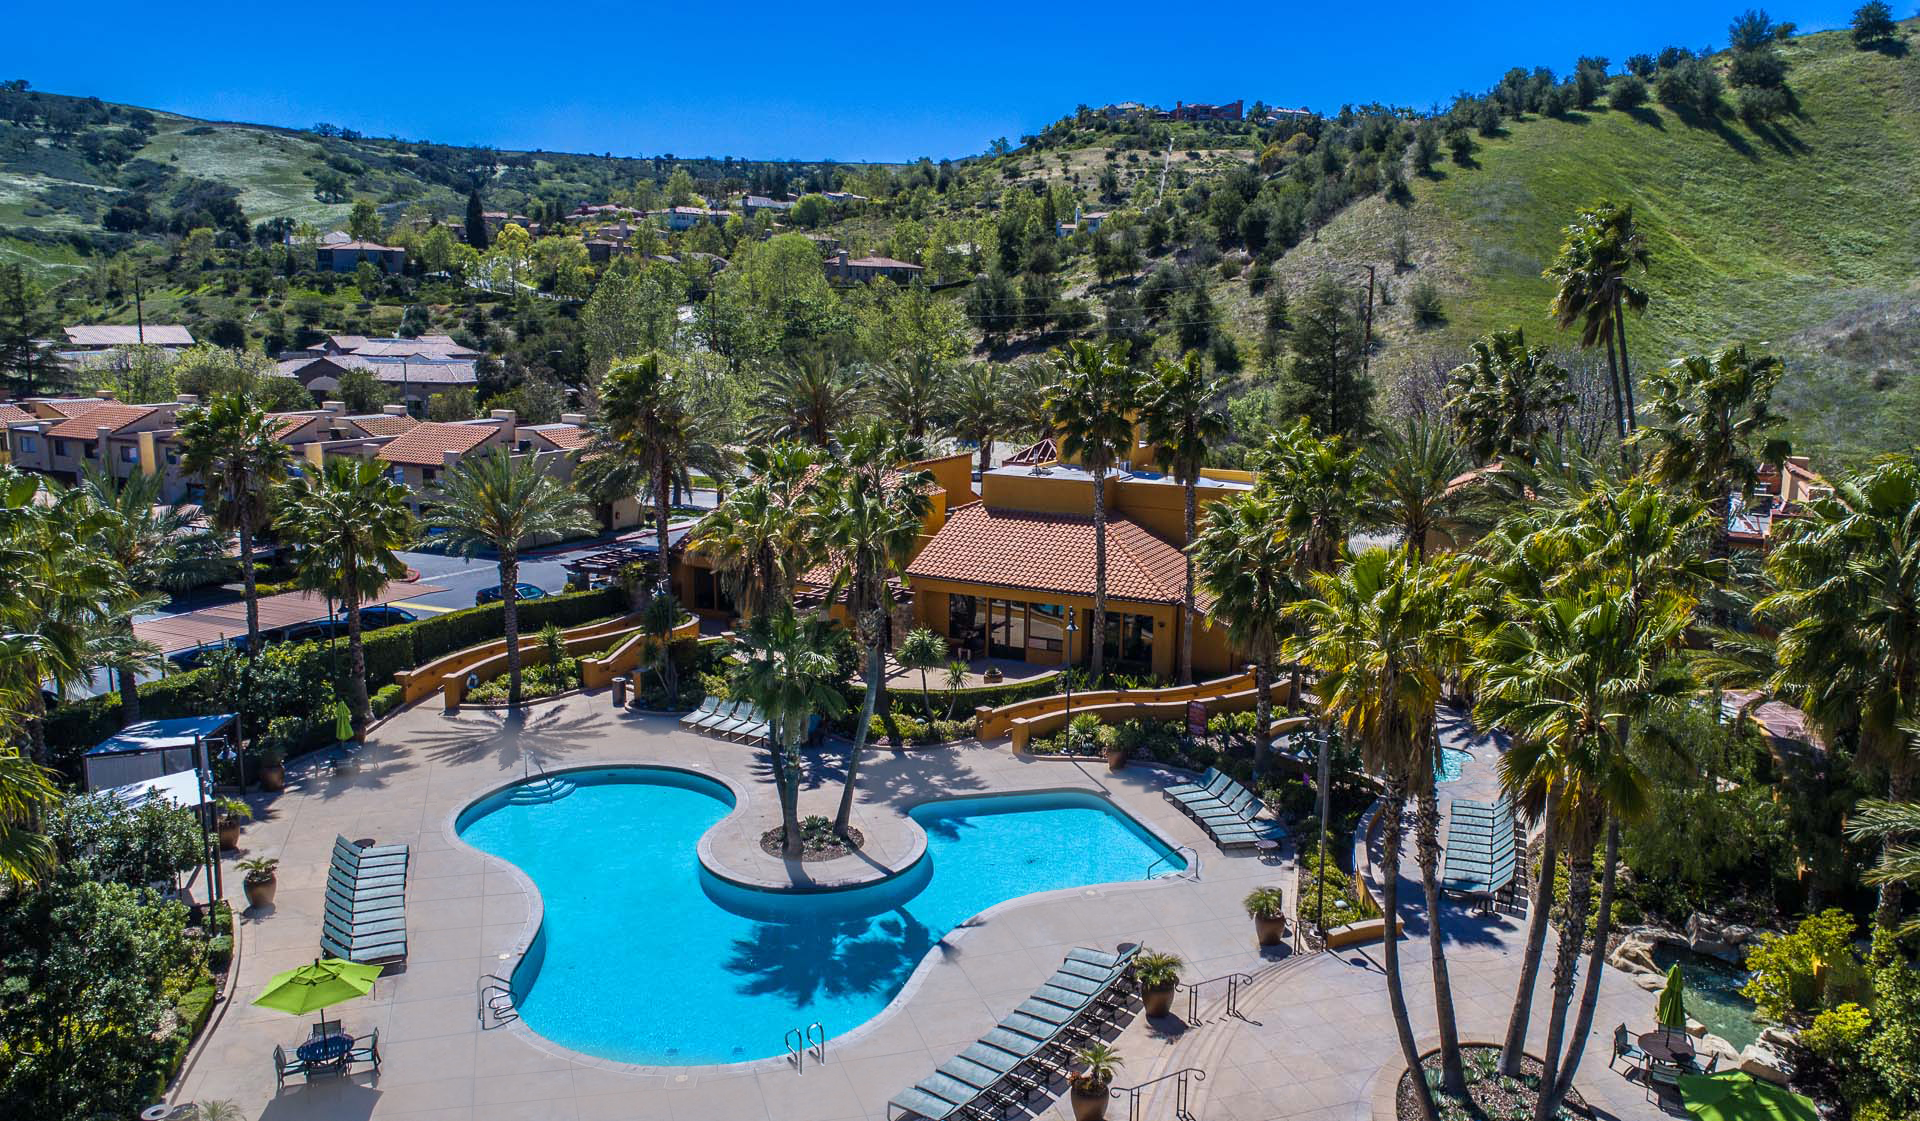 Malibu Canyon - Calabasas, CA - Pool and Patio